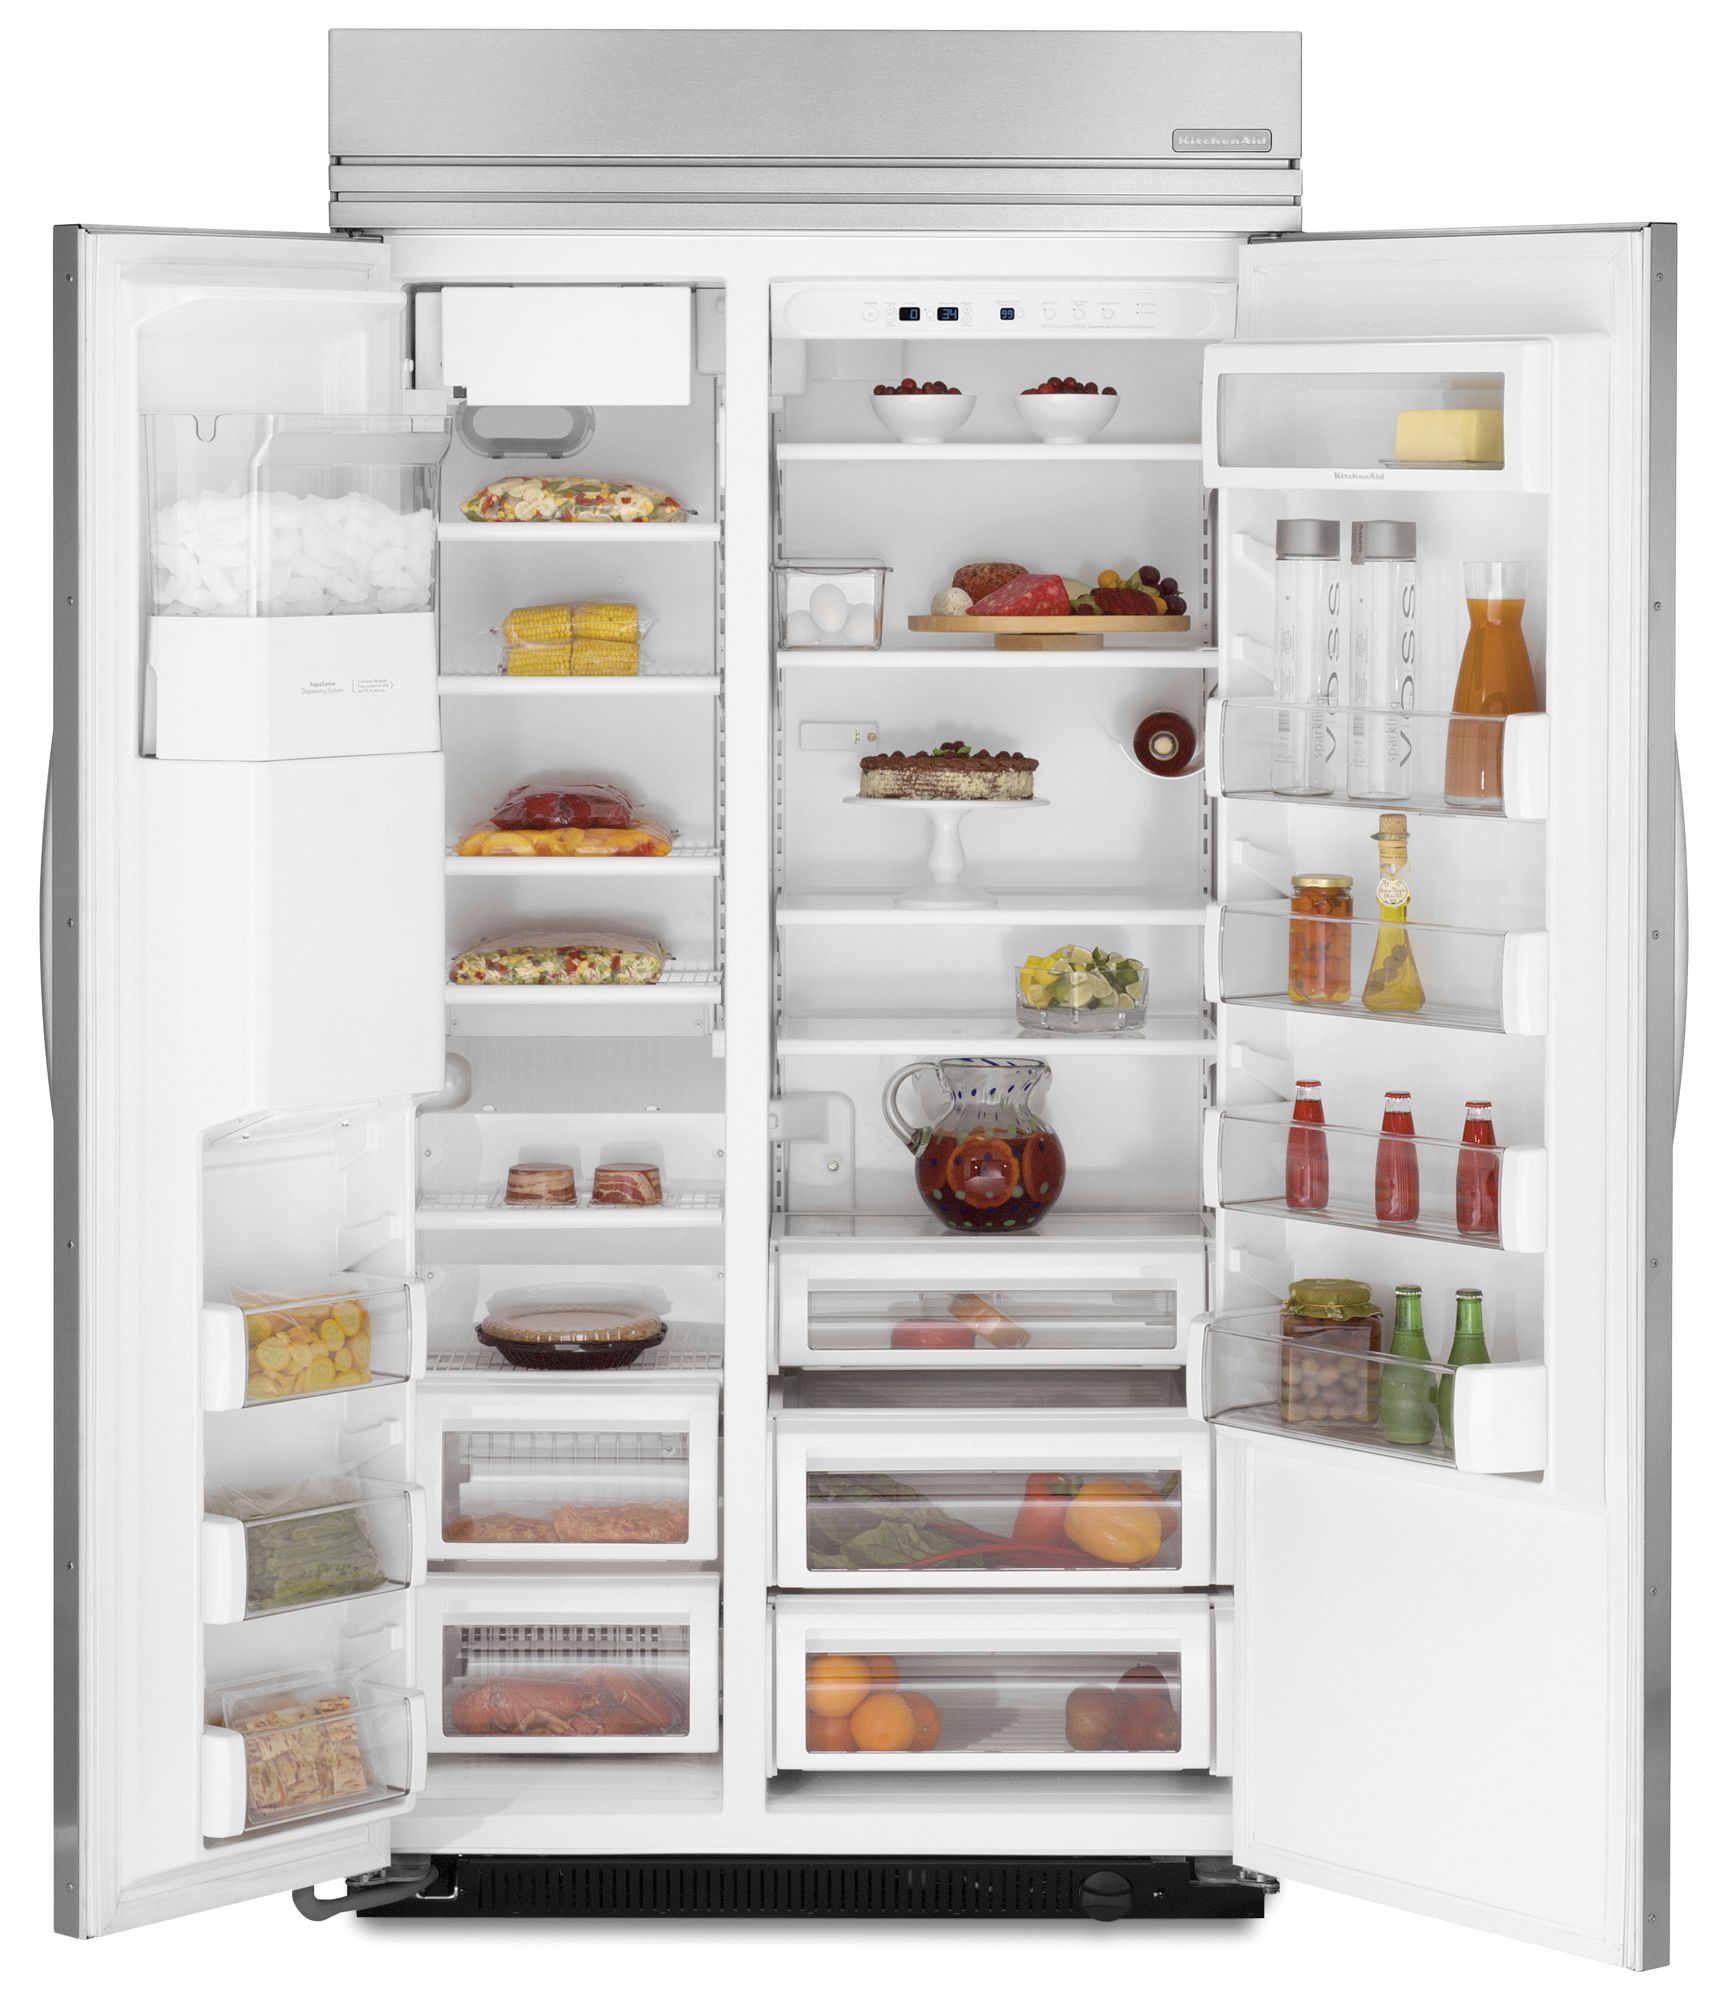 KitchenAid 25.3 cu. ft. Built-In Side-By-Side Refrigerator